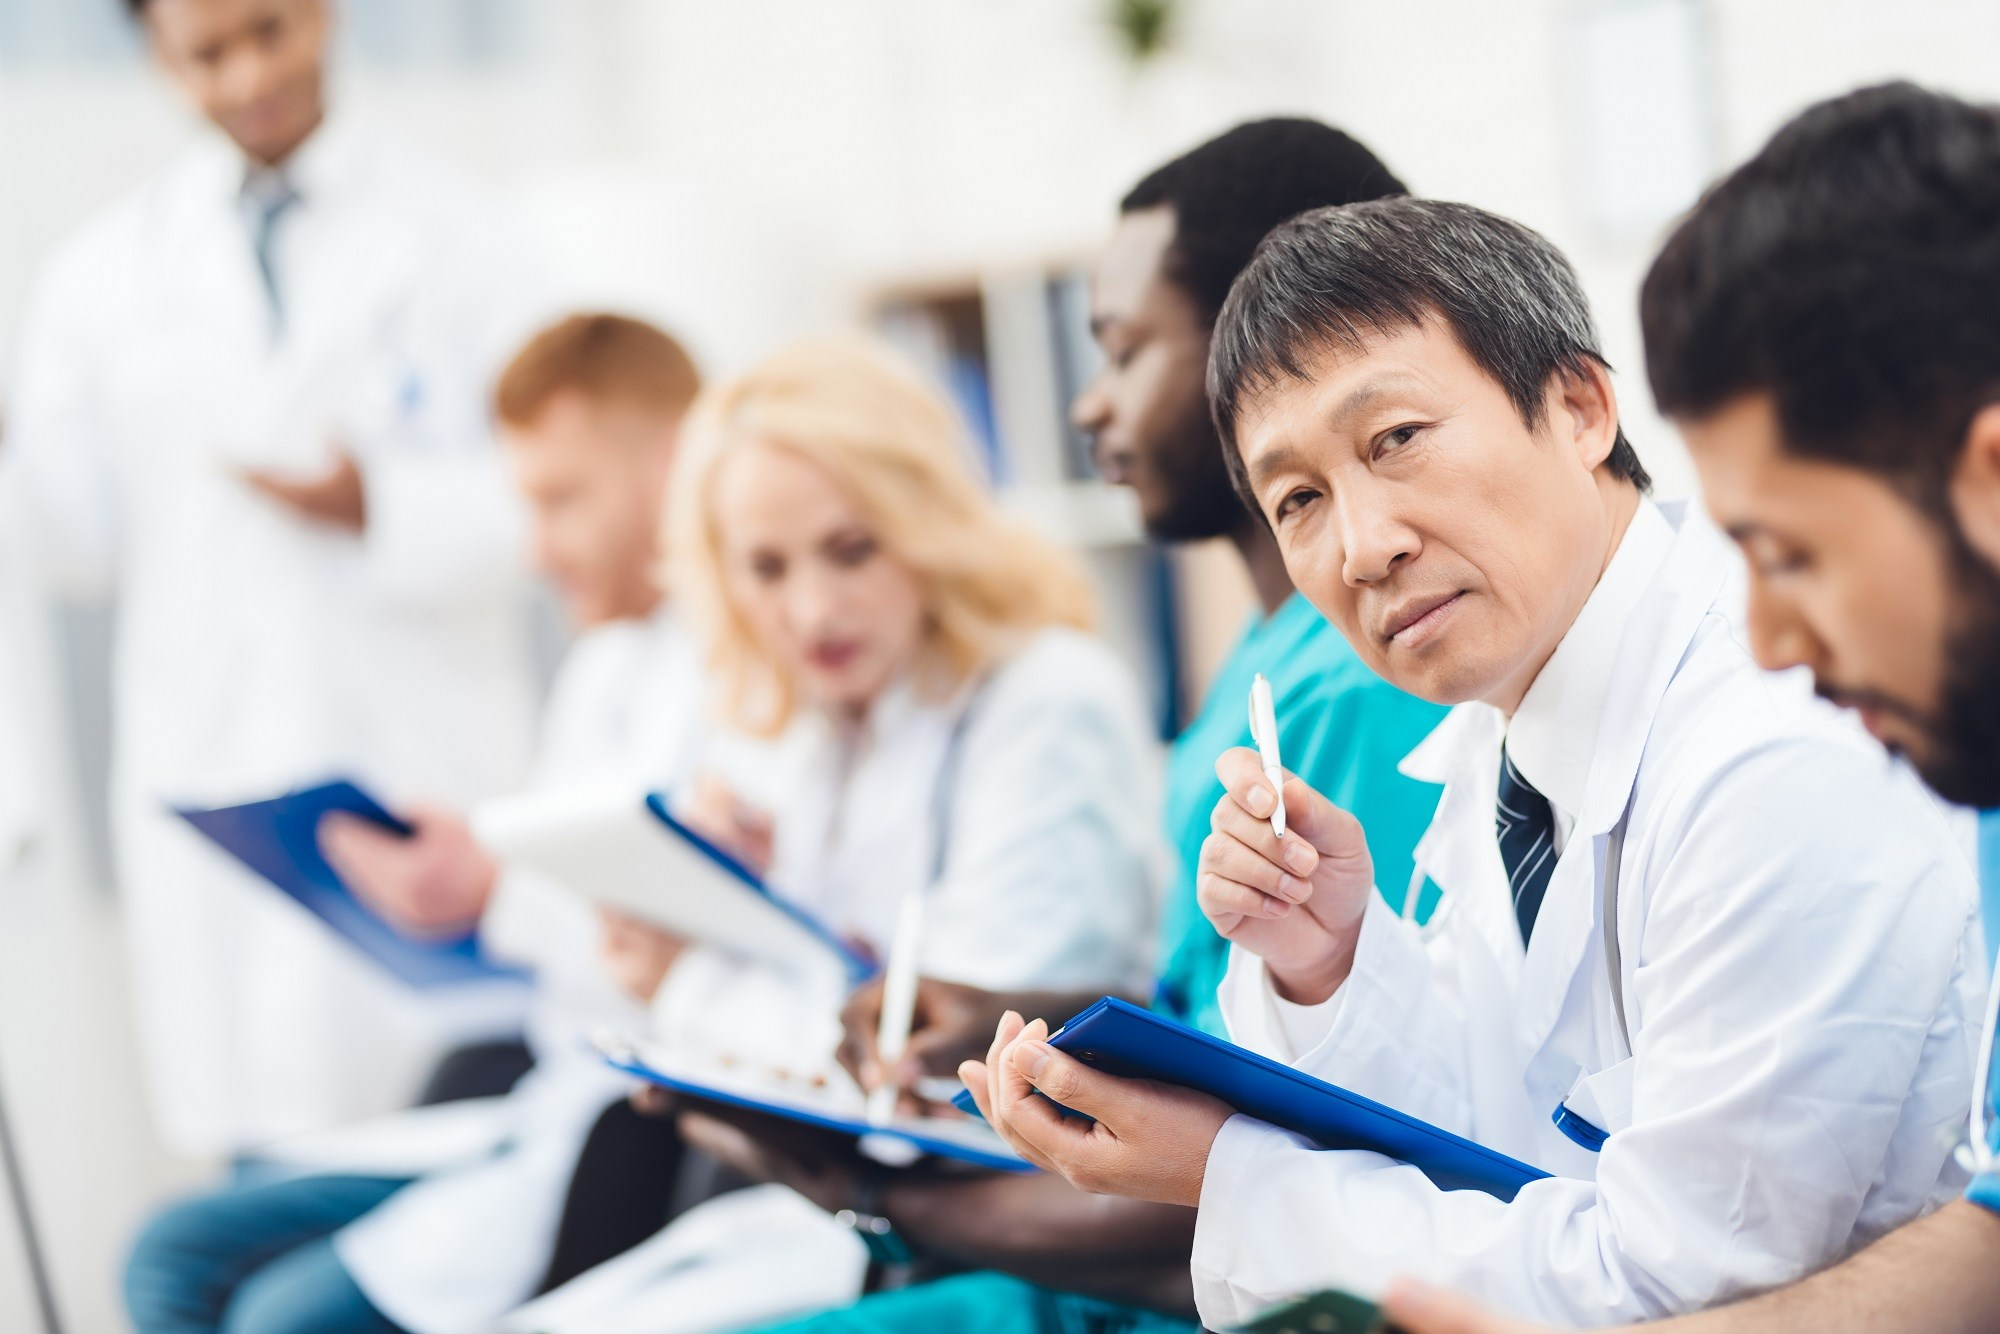 According to the AMA, many state medical boards persist in questioning licensure applicants about their history of treatment for mental health instead of focusing on their current fitness to practice.